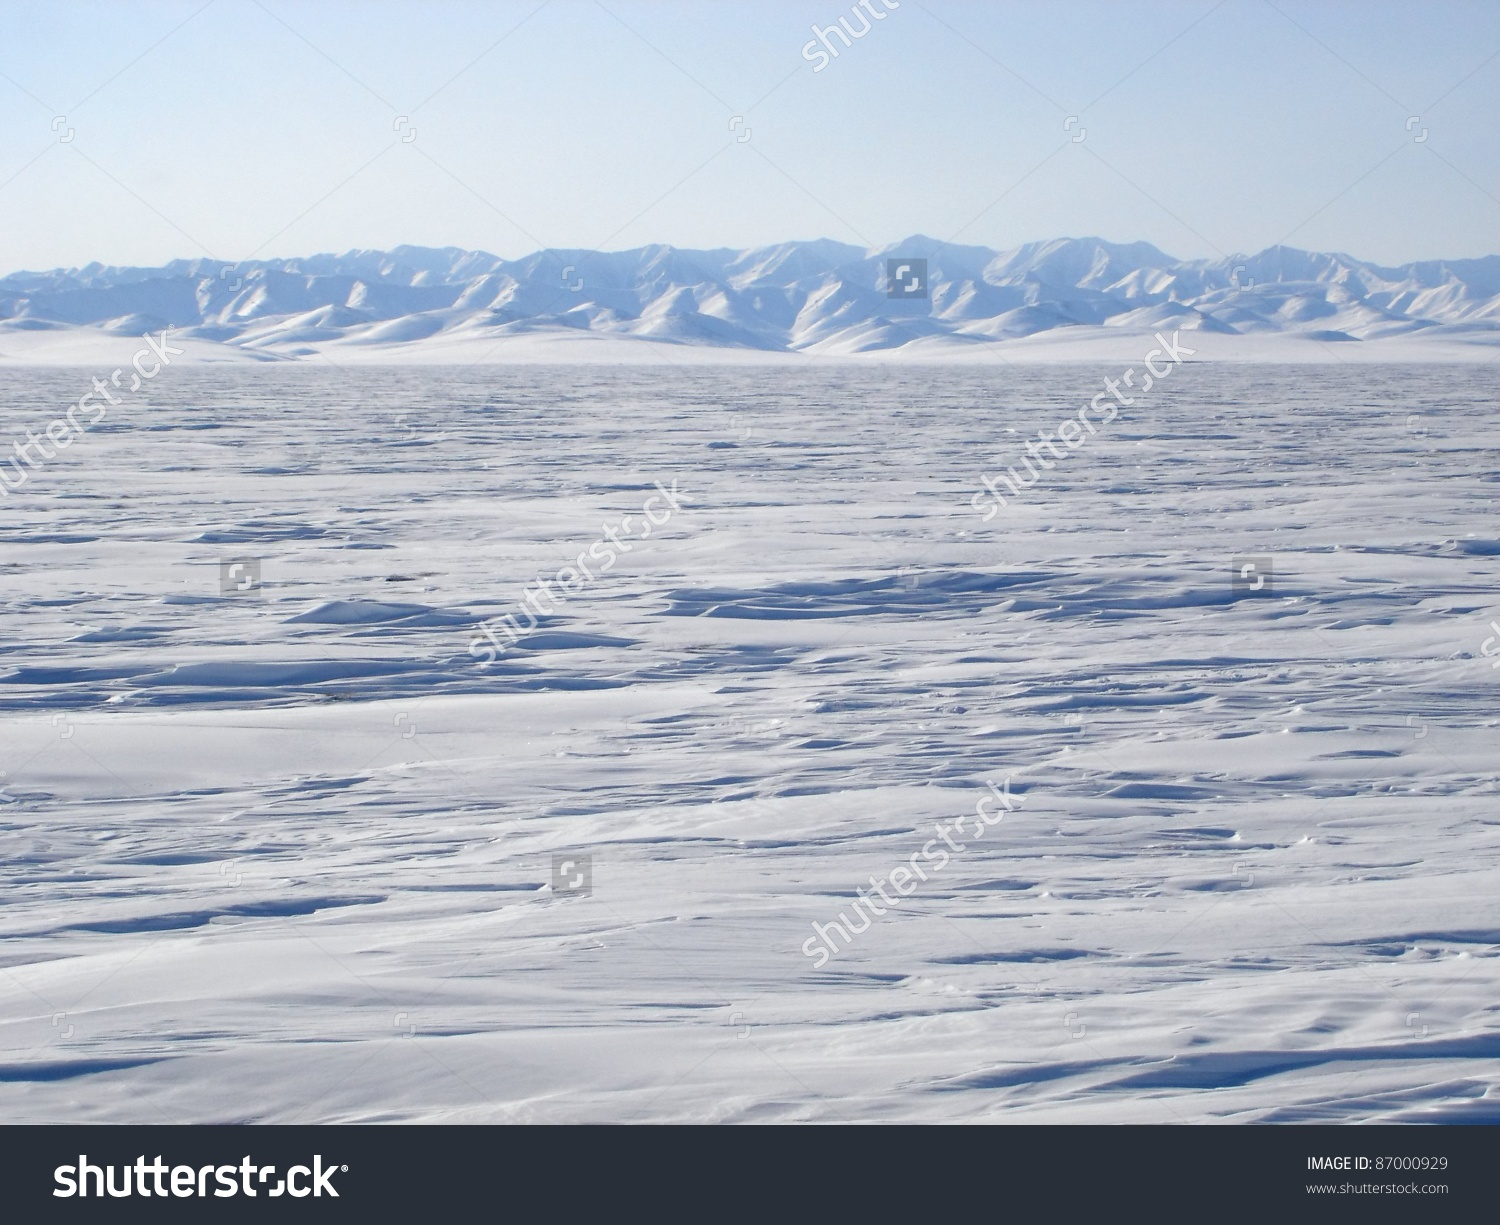 A View Of The Vast Arctic Landscape From The Edge Of The Arctic.